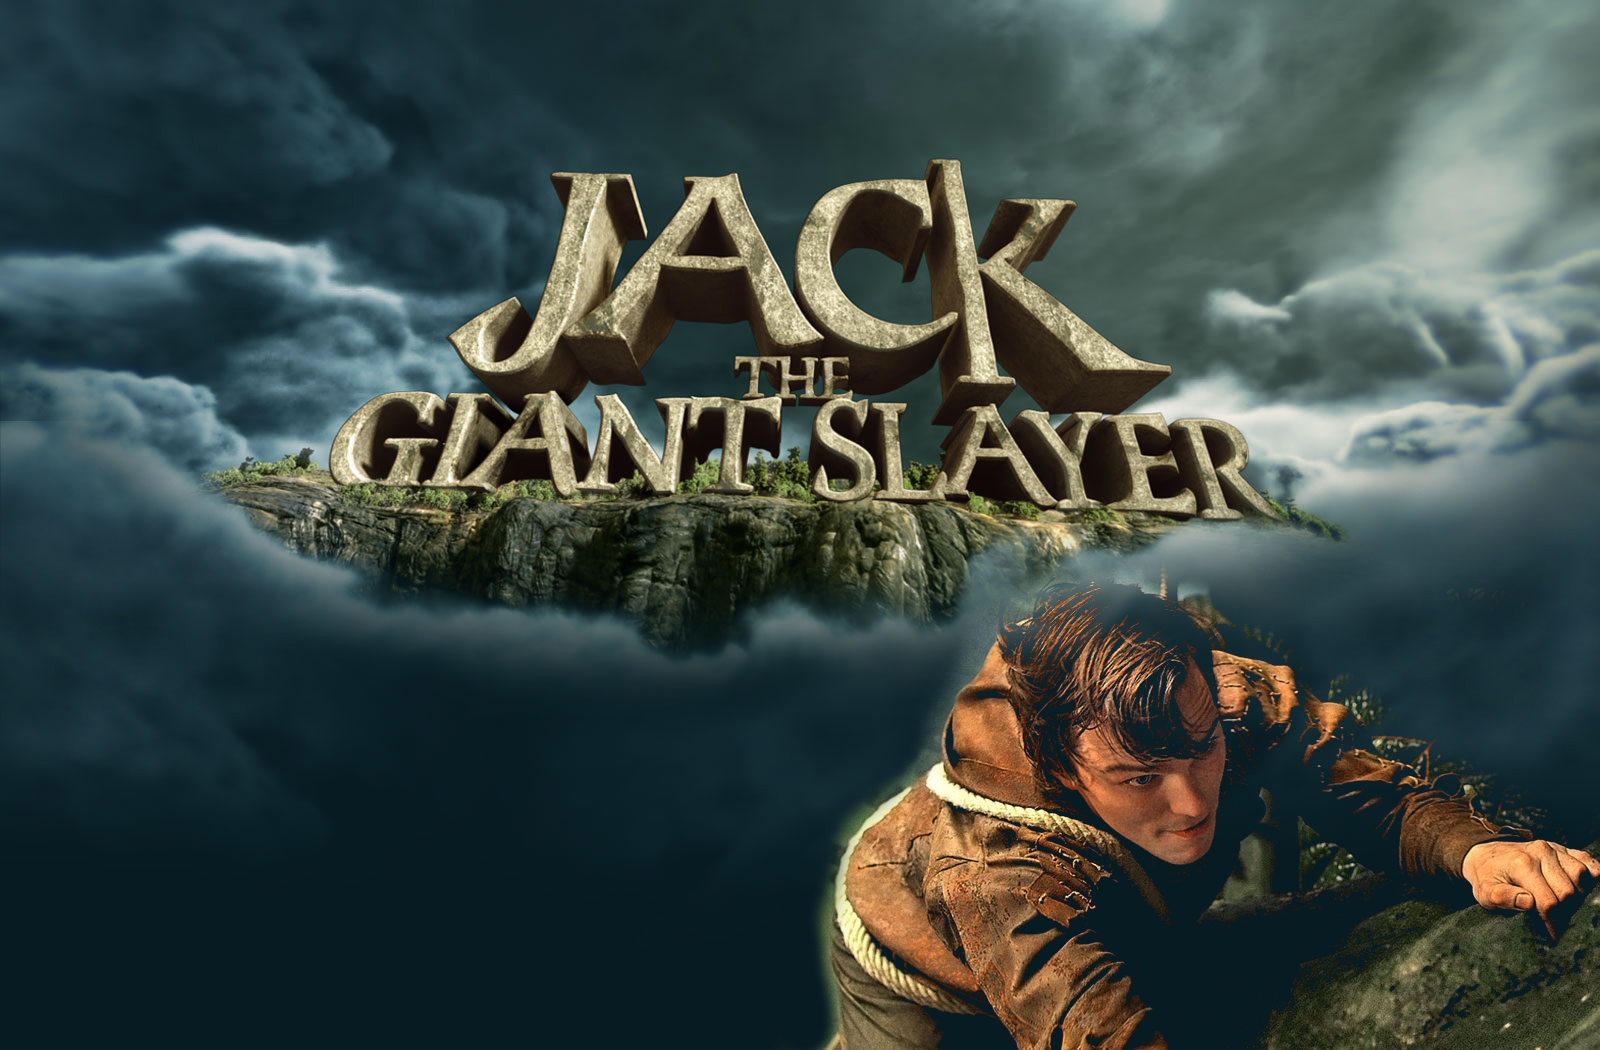 Amc Marlton 8 >> Jack the Giant Slayer | Glenn E. Walker